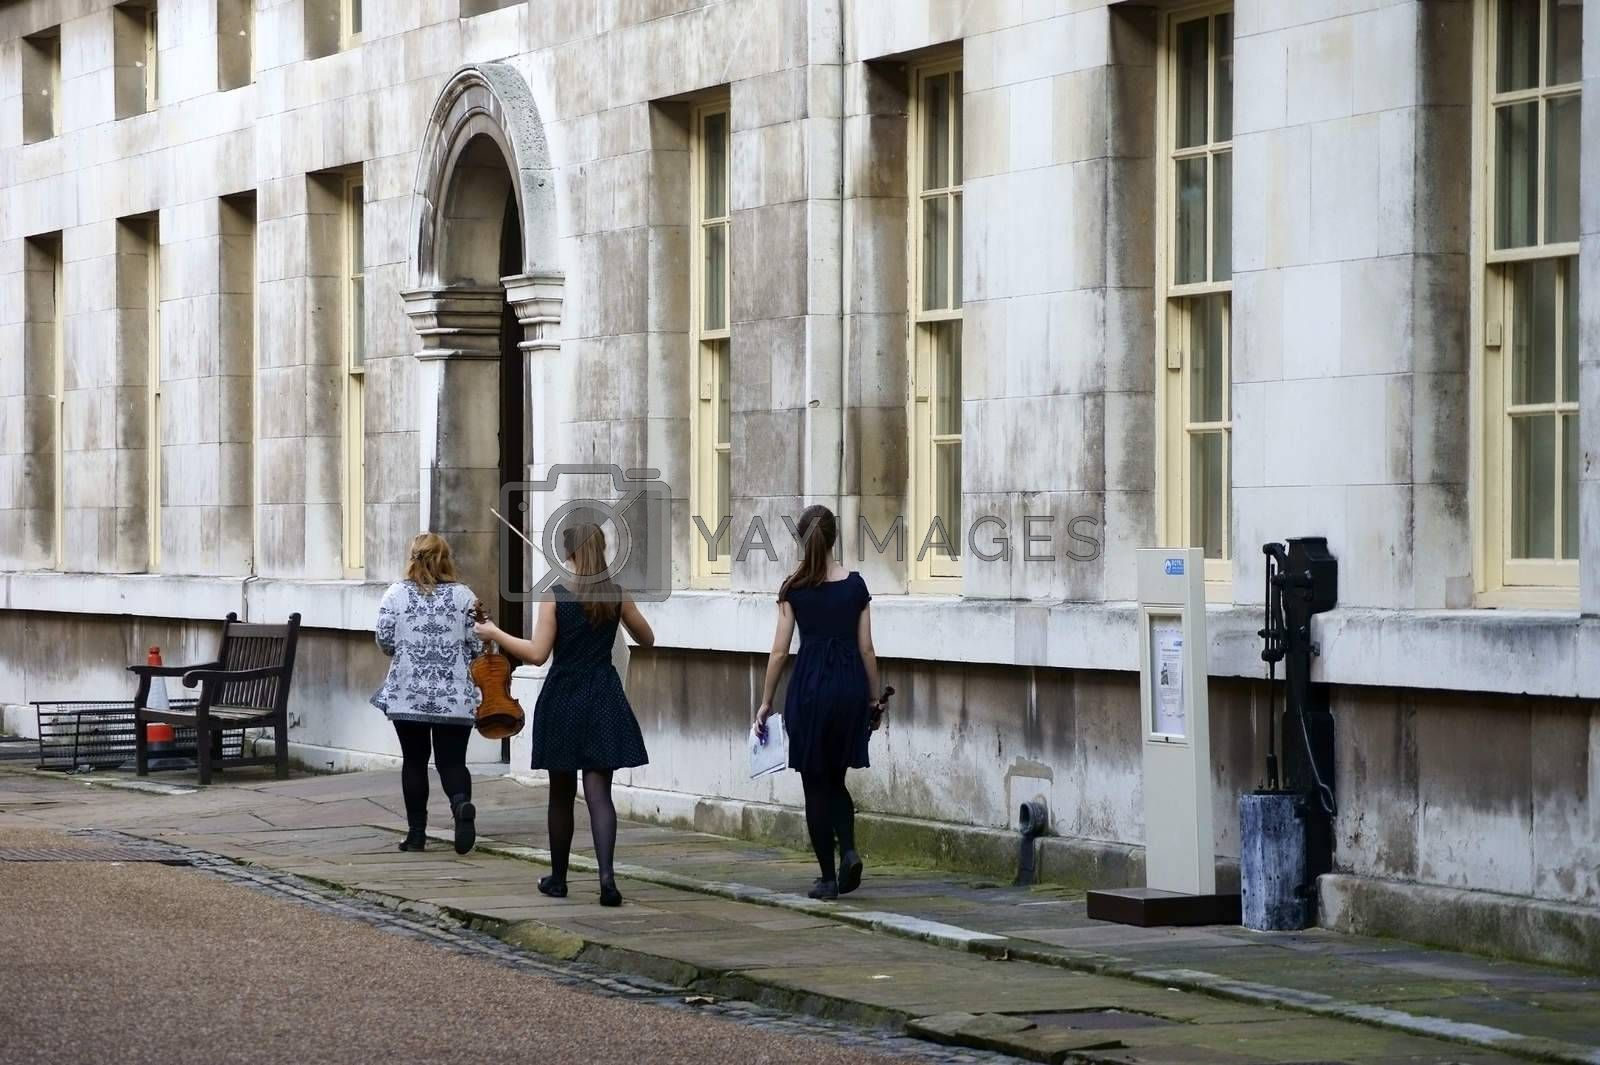 London, UK - November 29, 2014: A music teacher walks with her two students to violin lessons in an exercise room of the Royal Naval College in Greenwich on November 29, 2014 in London.